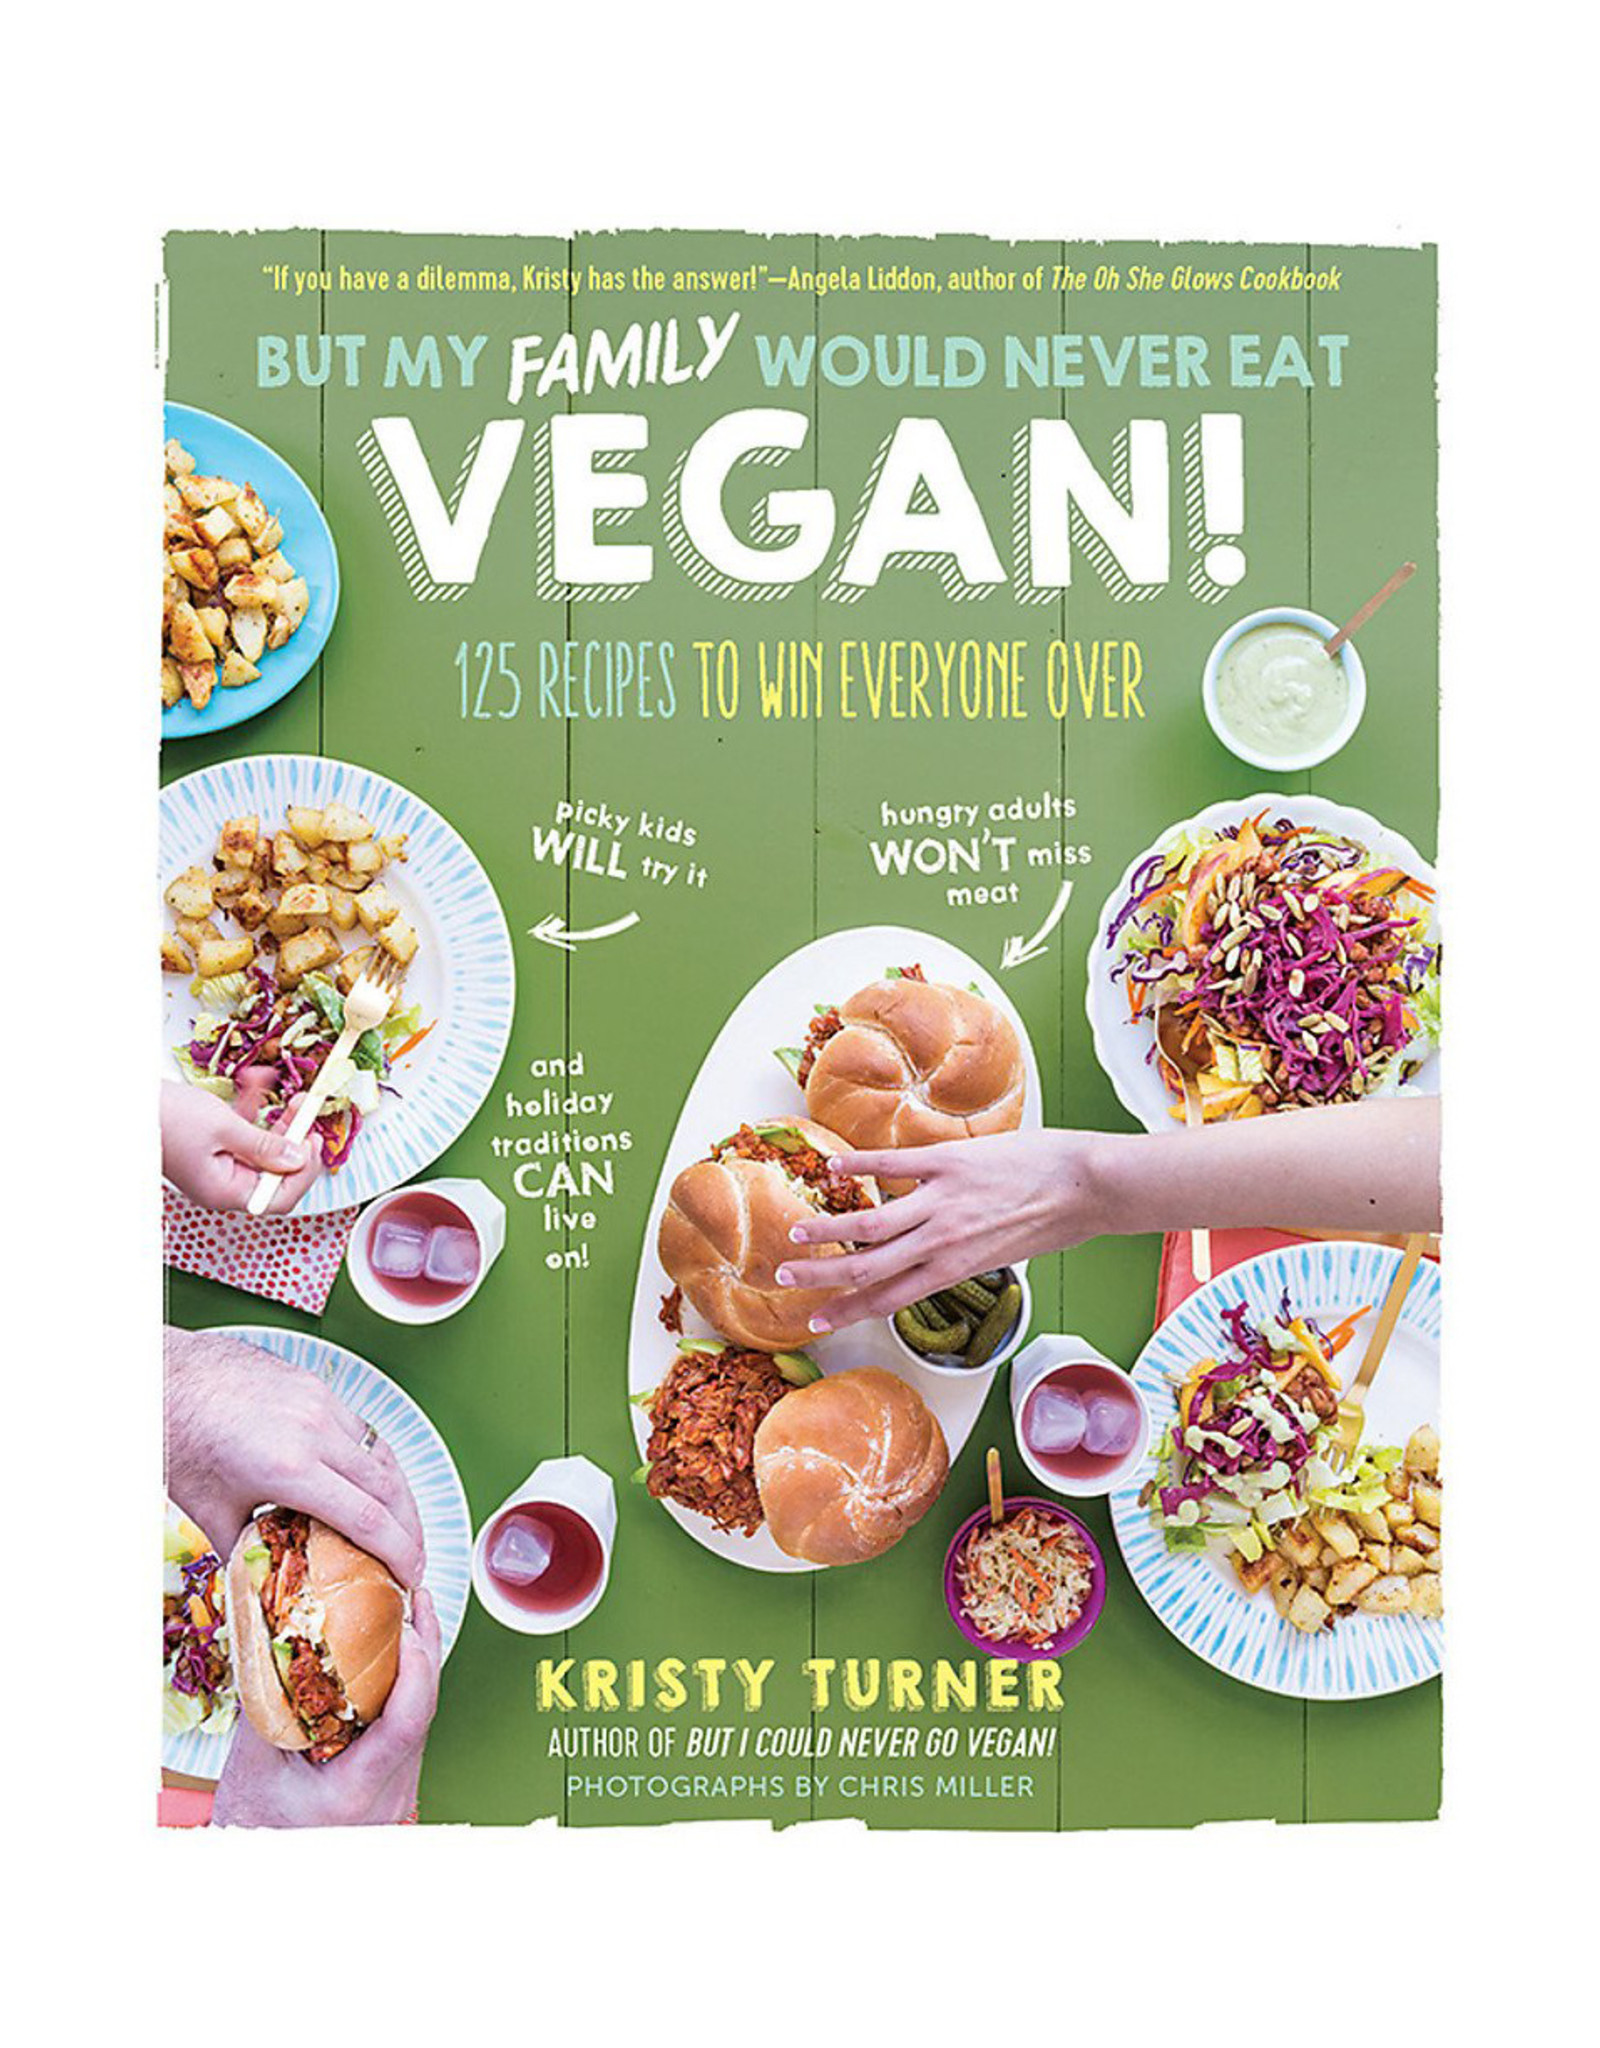 But My Family Would Never Eat Vegan!